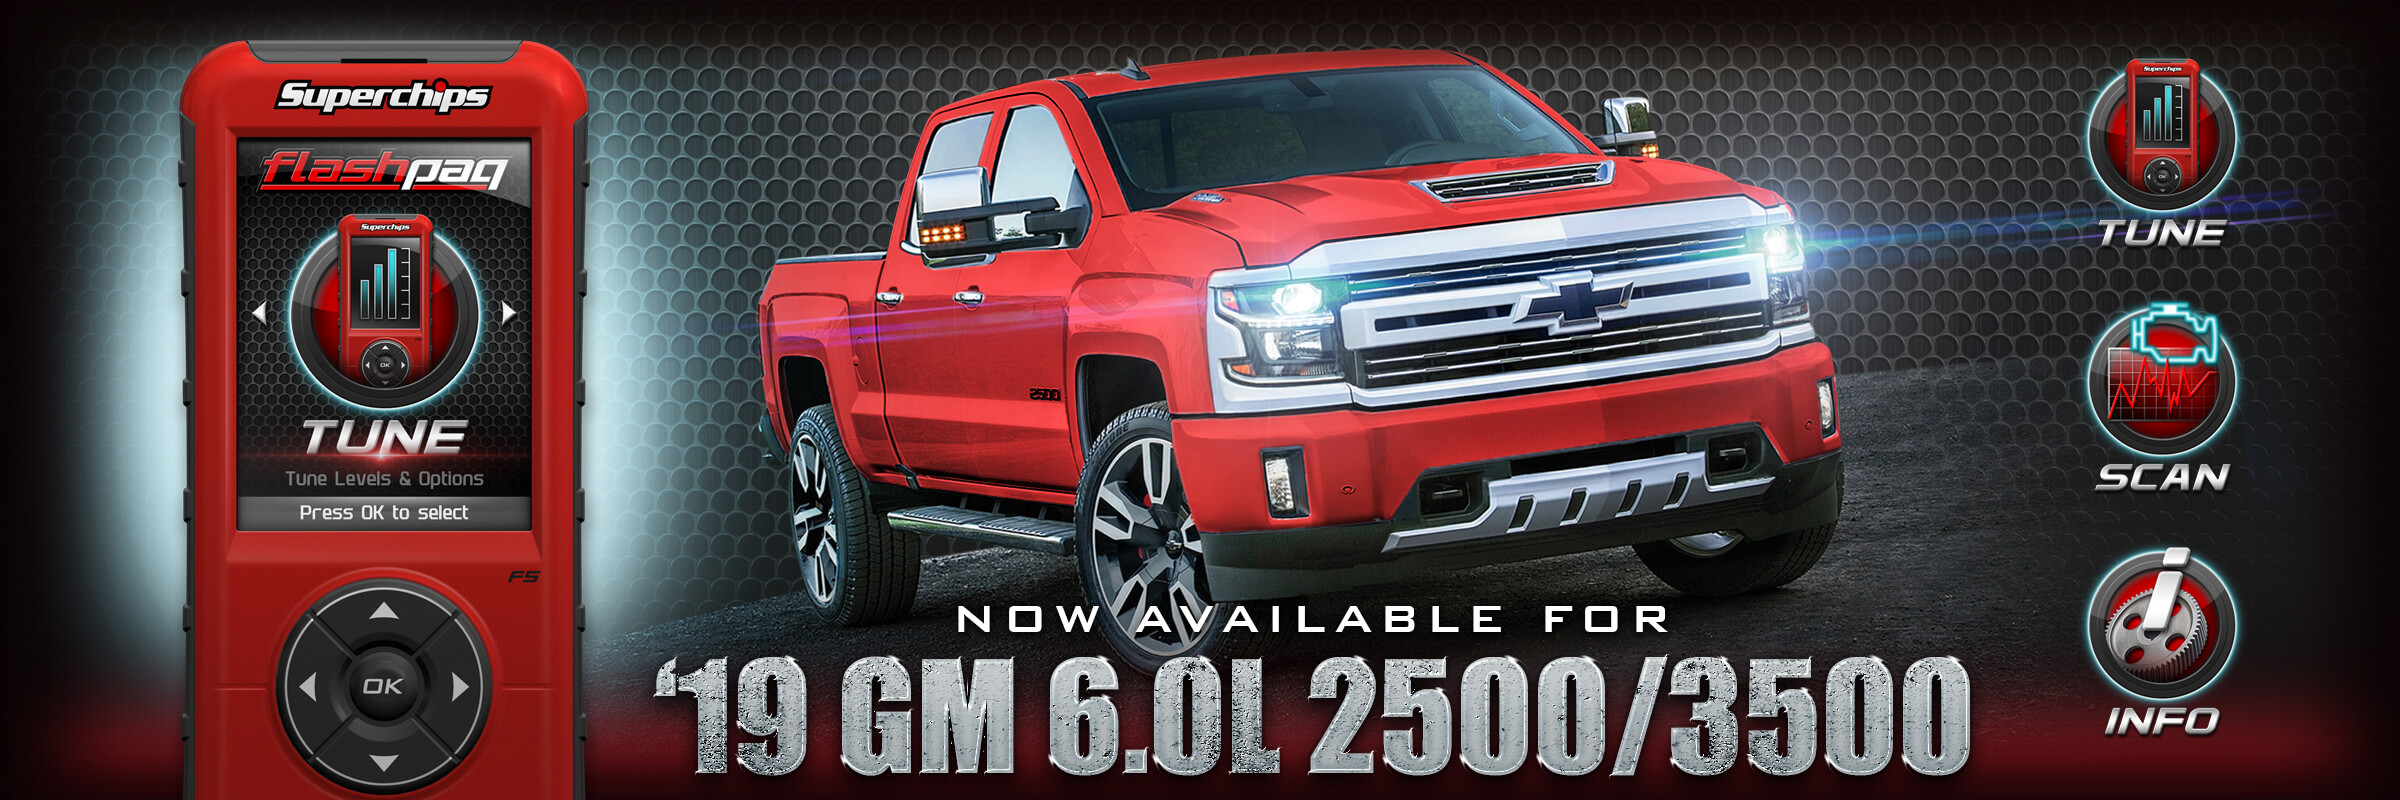 2019 6 0l Gmc Chevy Gas Tuning Now Available For 2500 3500